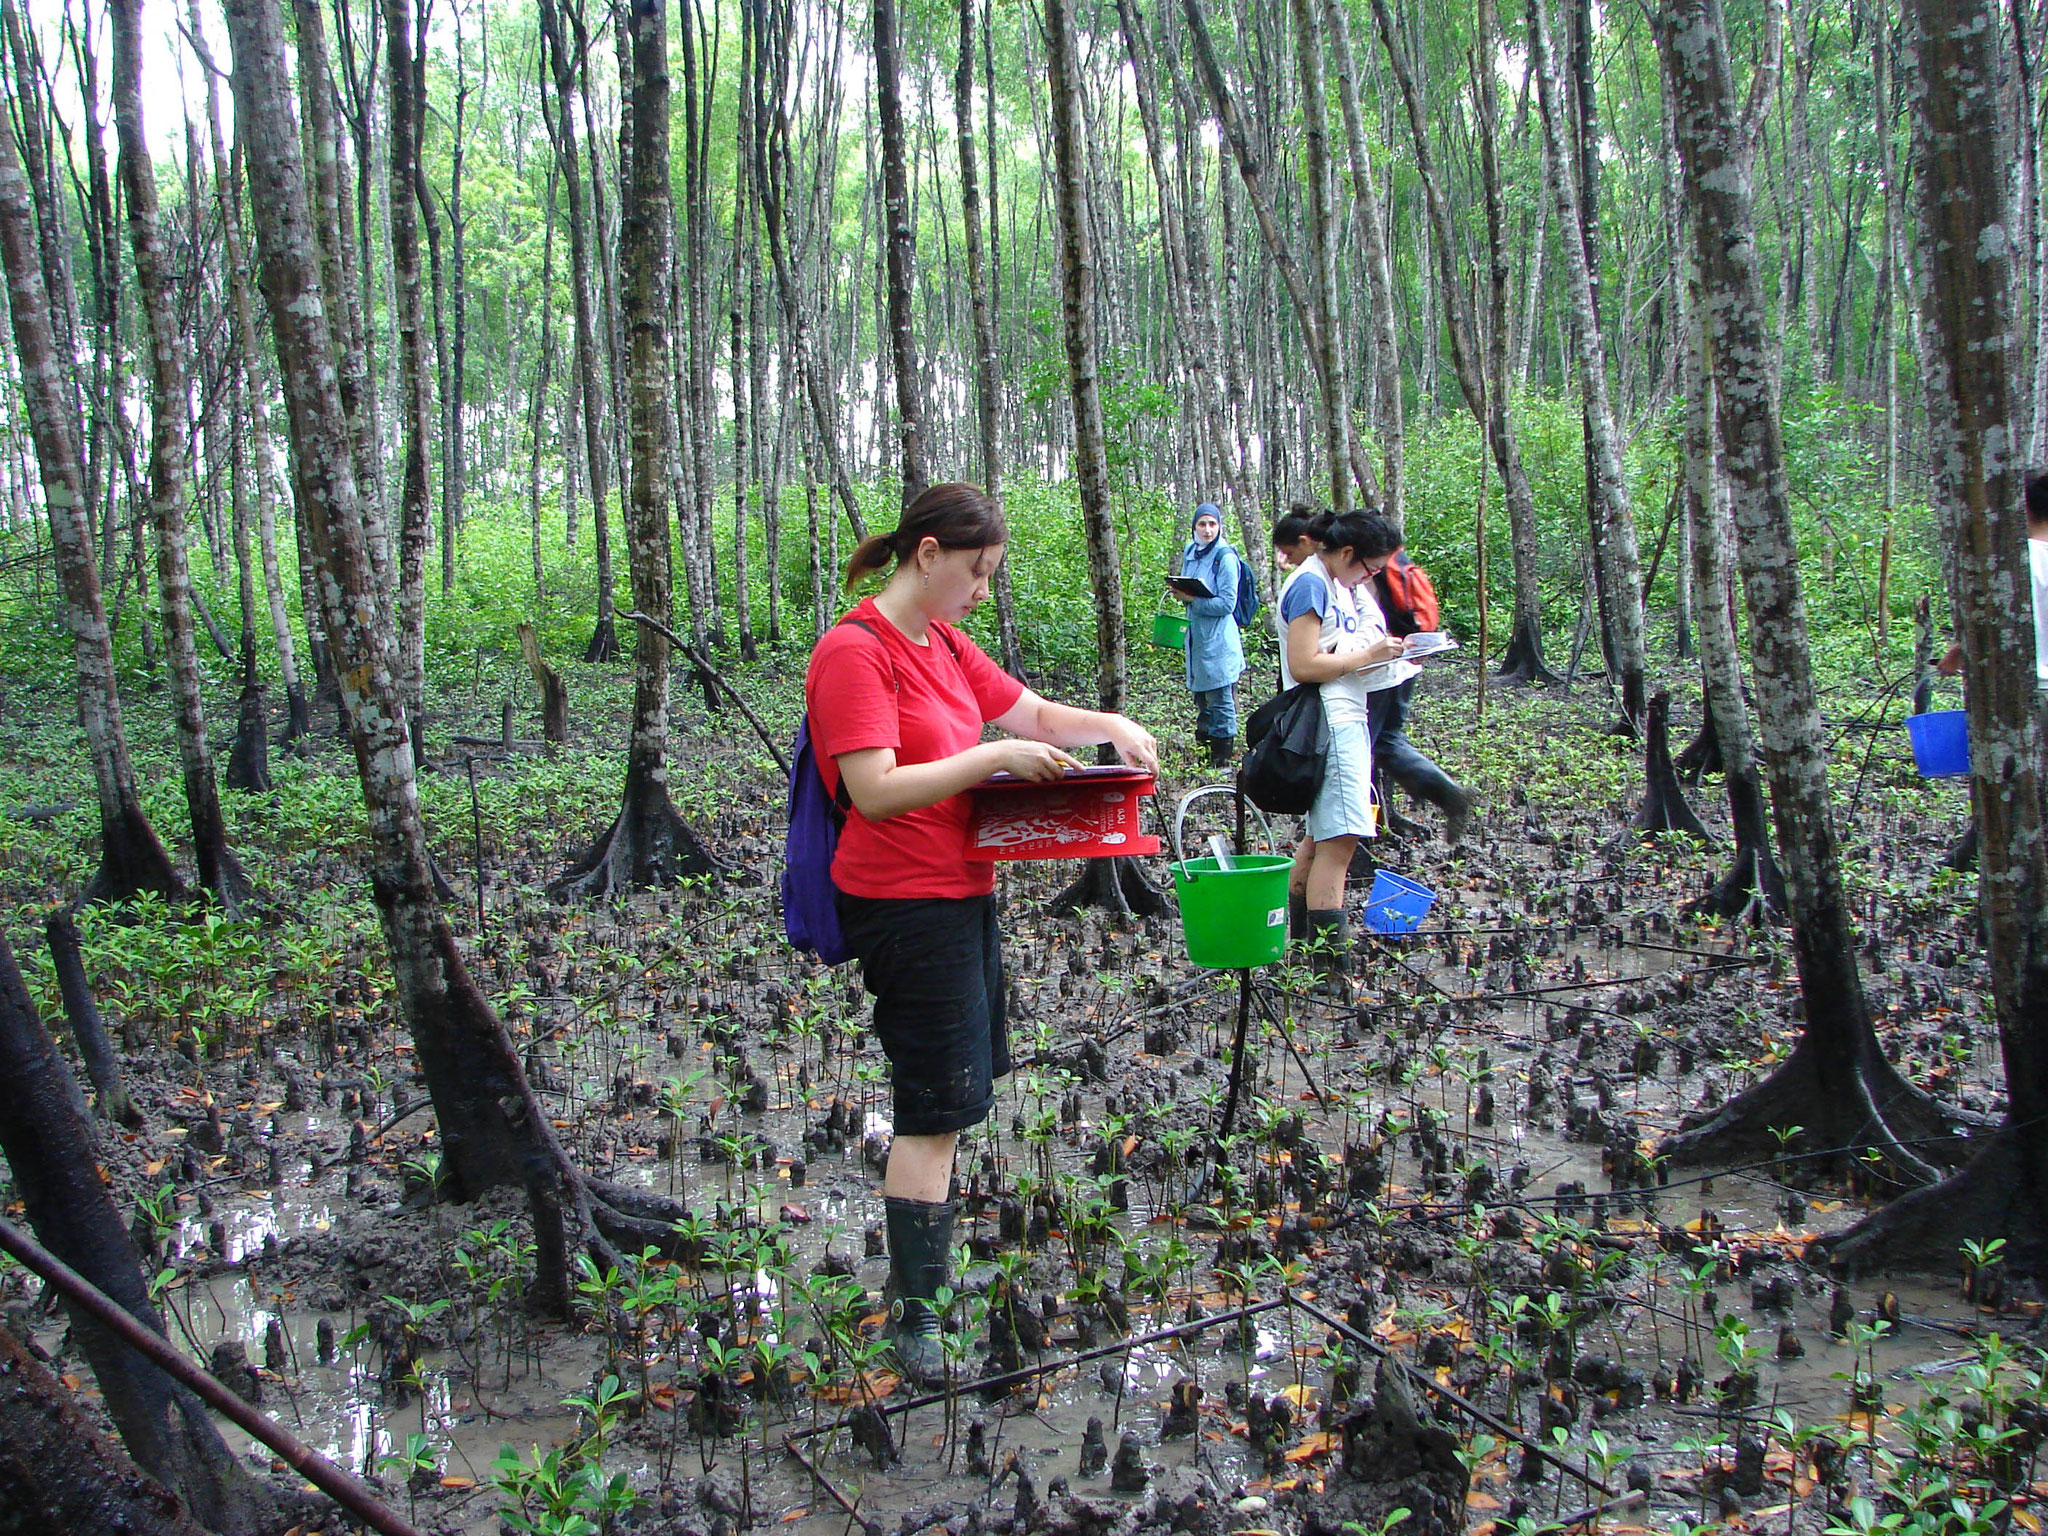 Mangrove sampling's field trip. Photo credit to Dr. Holly.